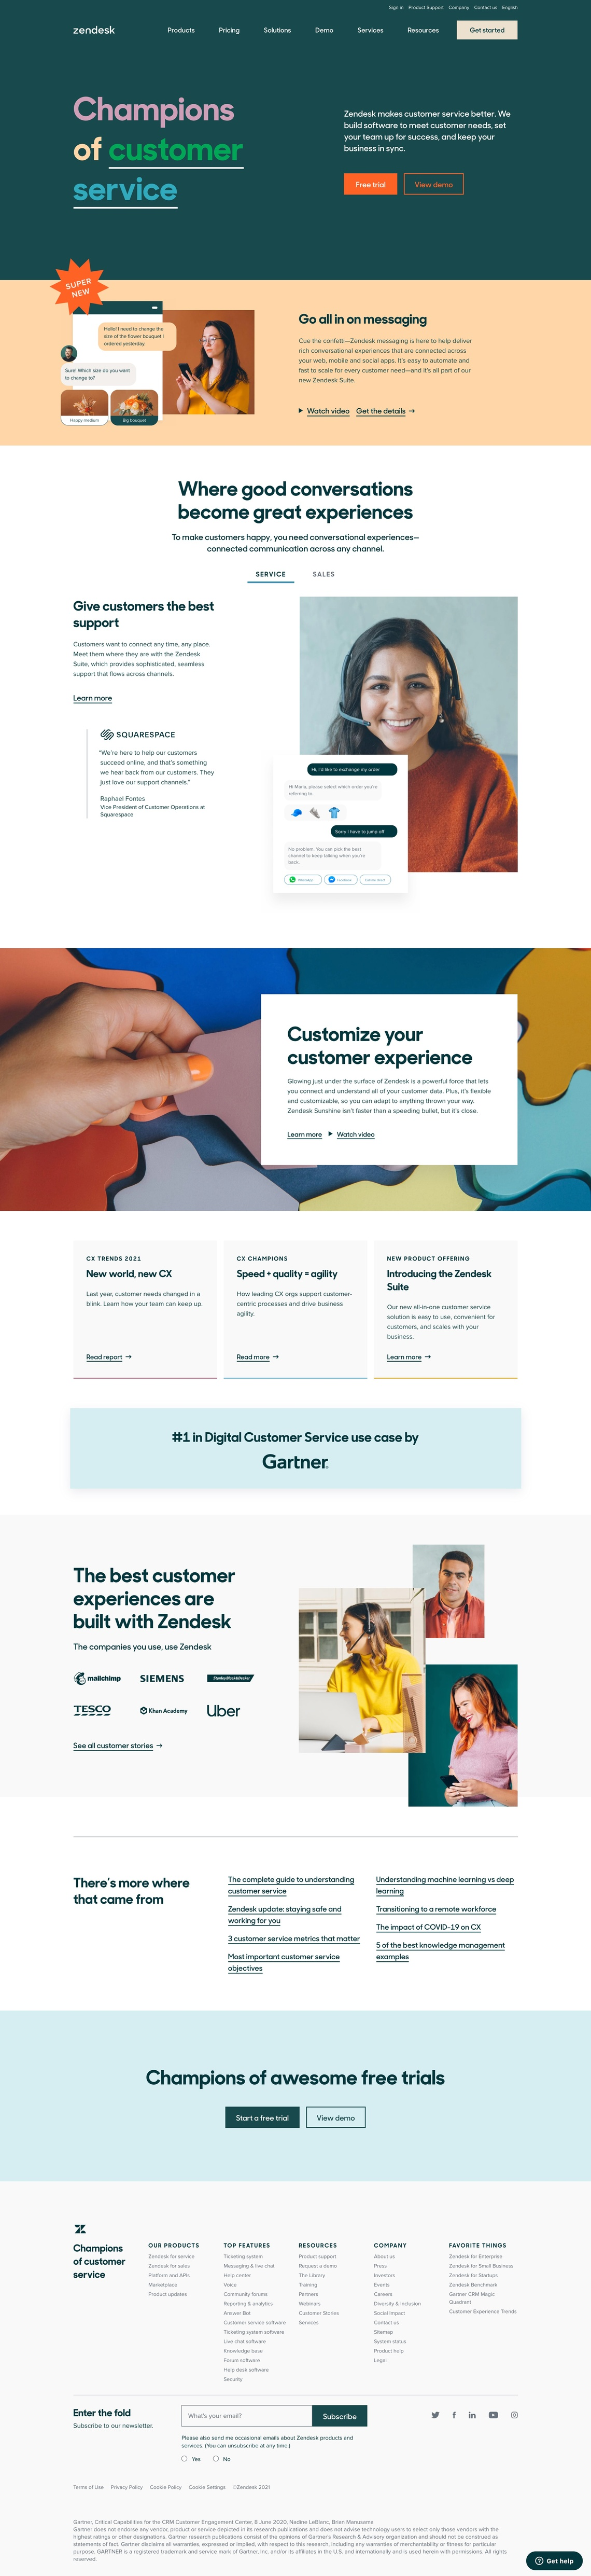 Customer Service Software & Sales CRM | Best in 2021 from Zendesk.